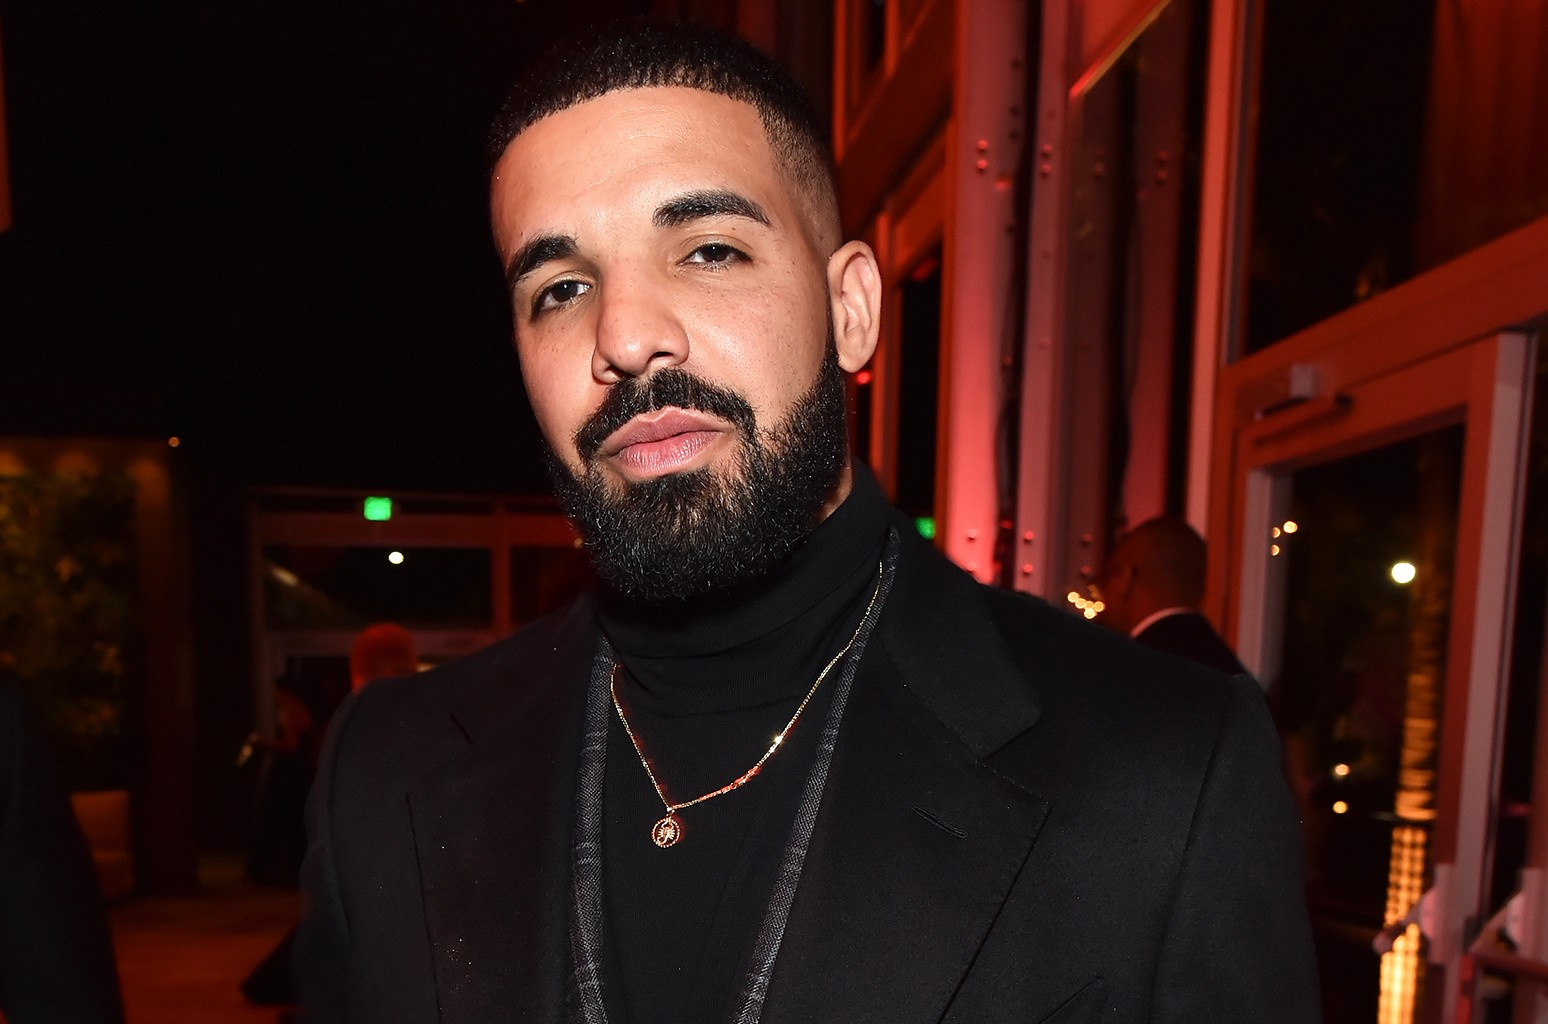 Here Are The Lyrics To Drake S Emotionless Billboard Joshua gomez began his acting career early in the 2000s guest starring on an episode of law & order and made his film debut in the critically. here are the lyrics to drake s